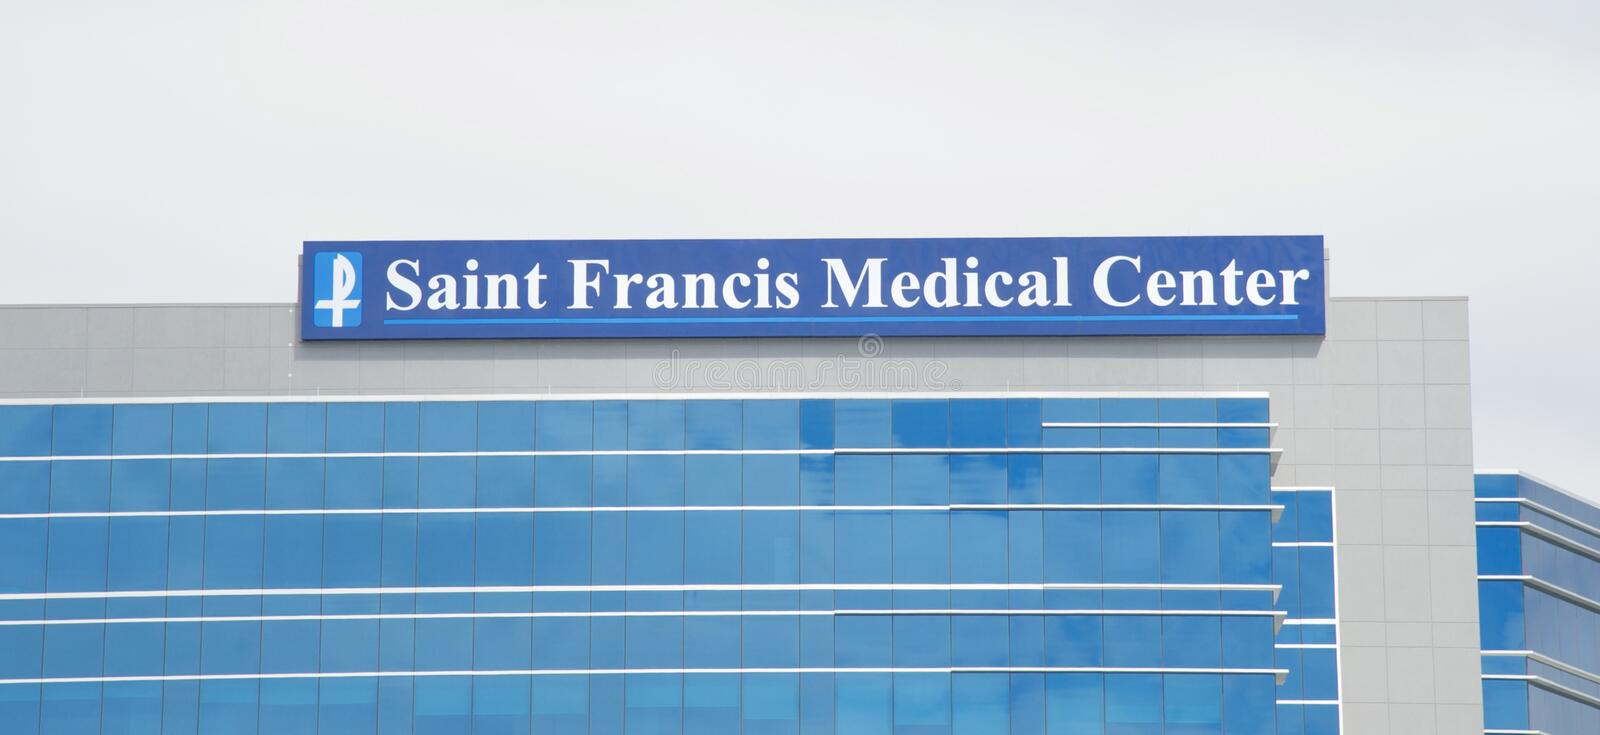 Saint Francis Medical Center stock image